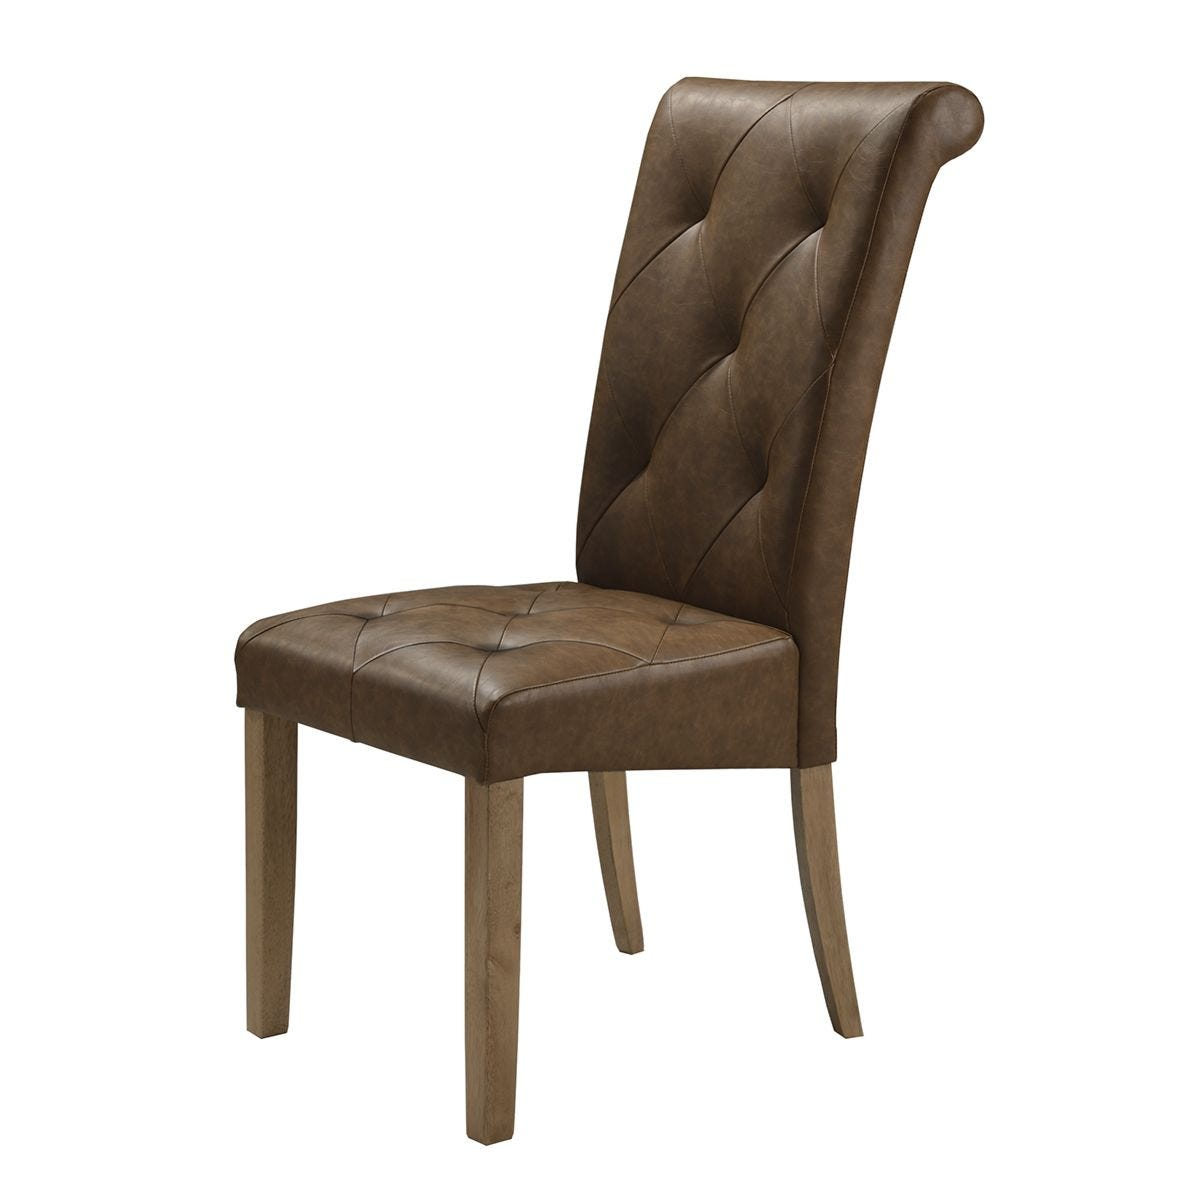 Set Of 2 Nicole Solid Rubberwood Chairs With Faux Leather Seats- Brown